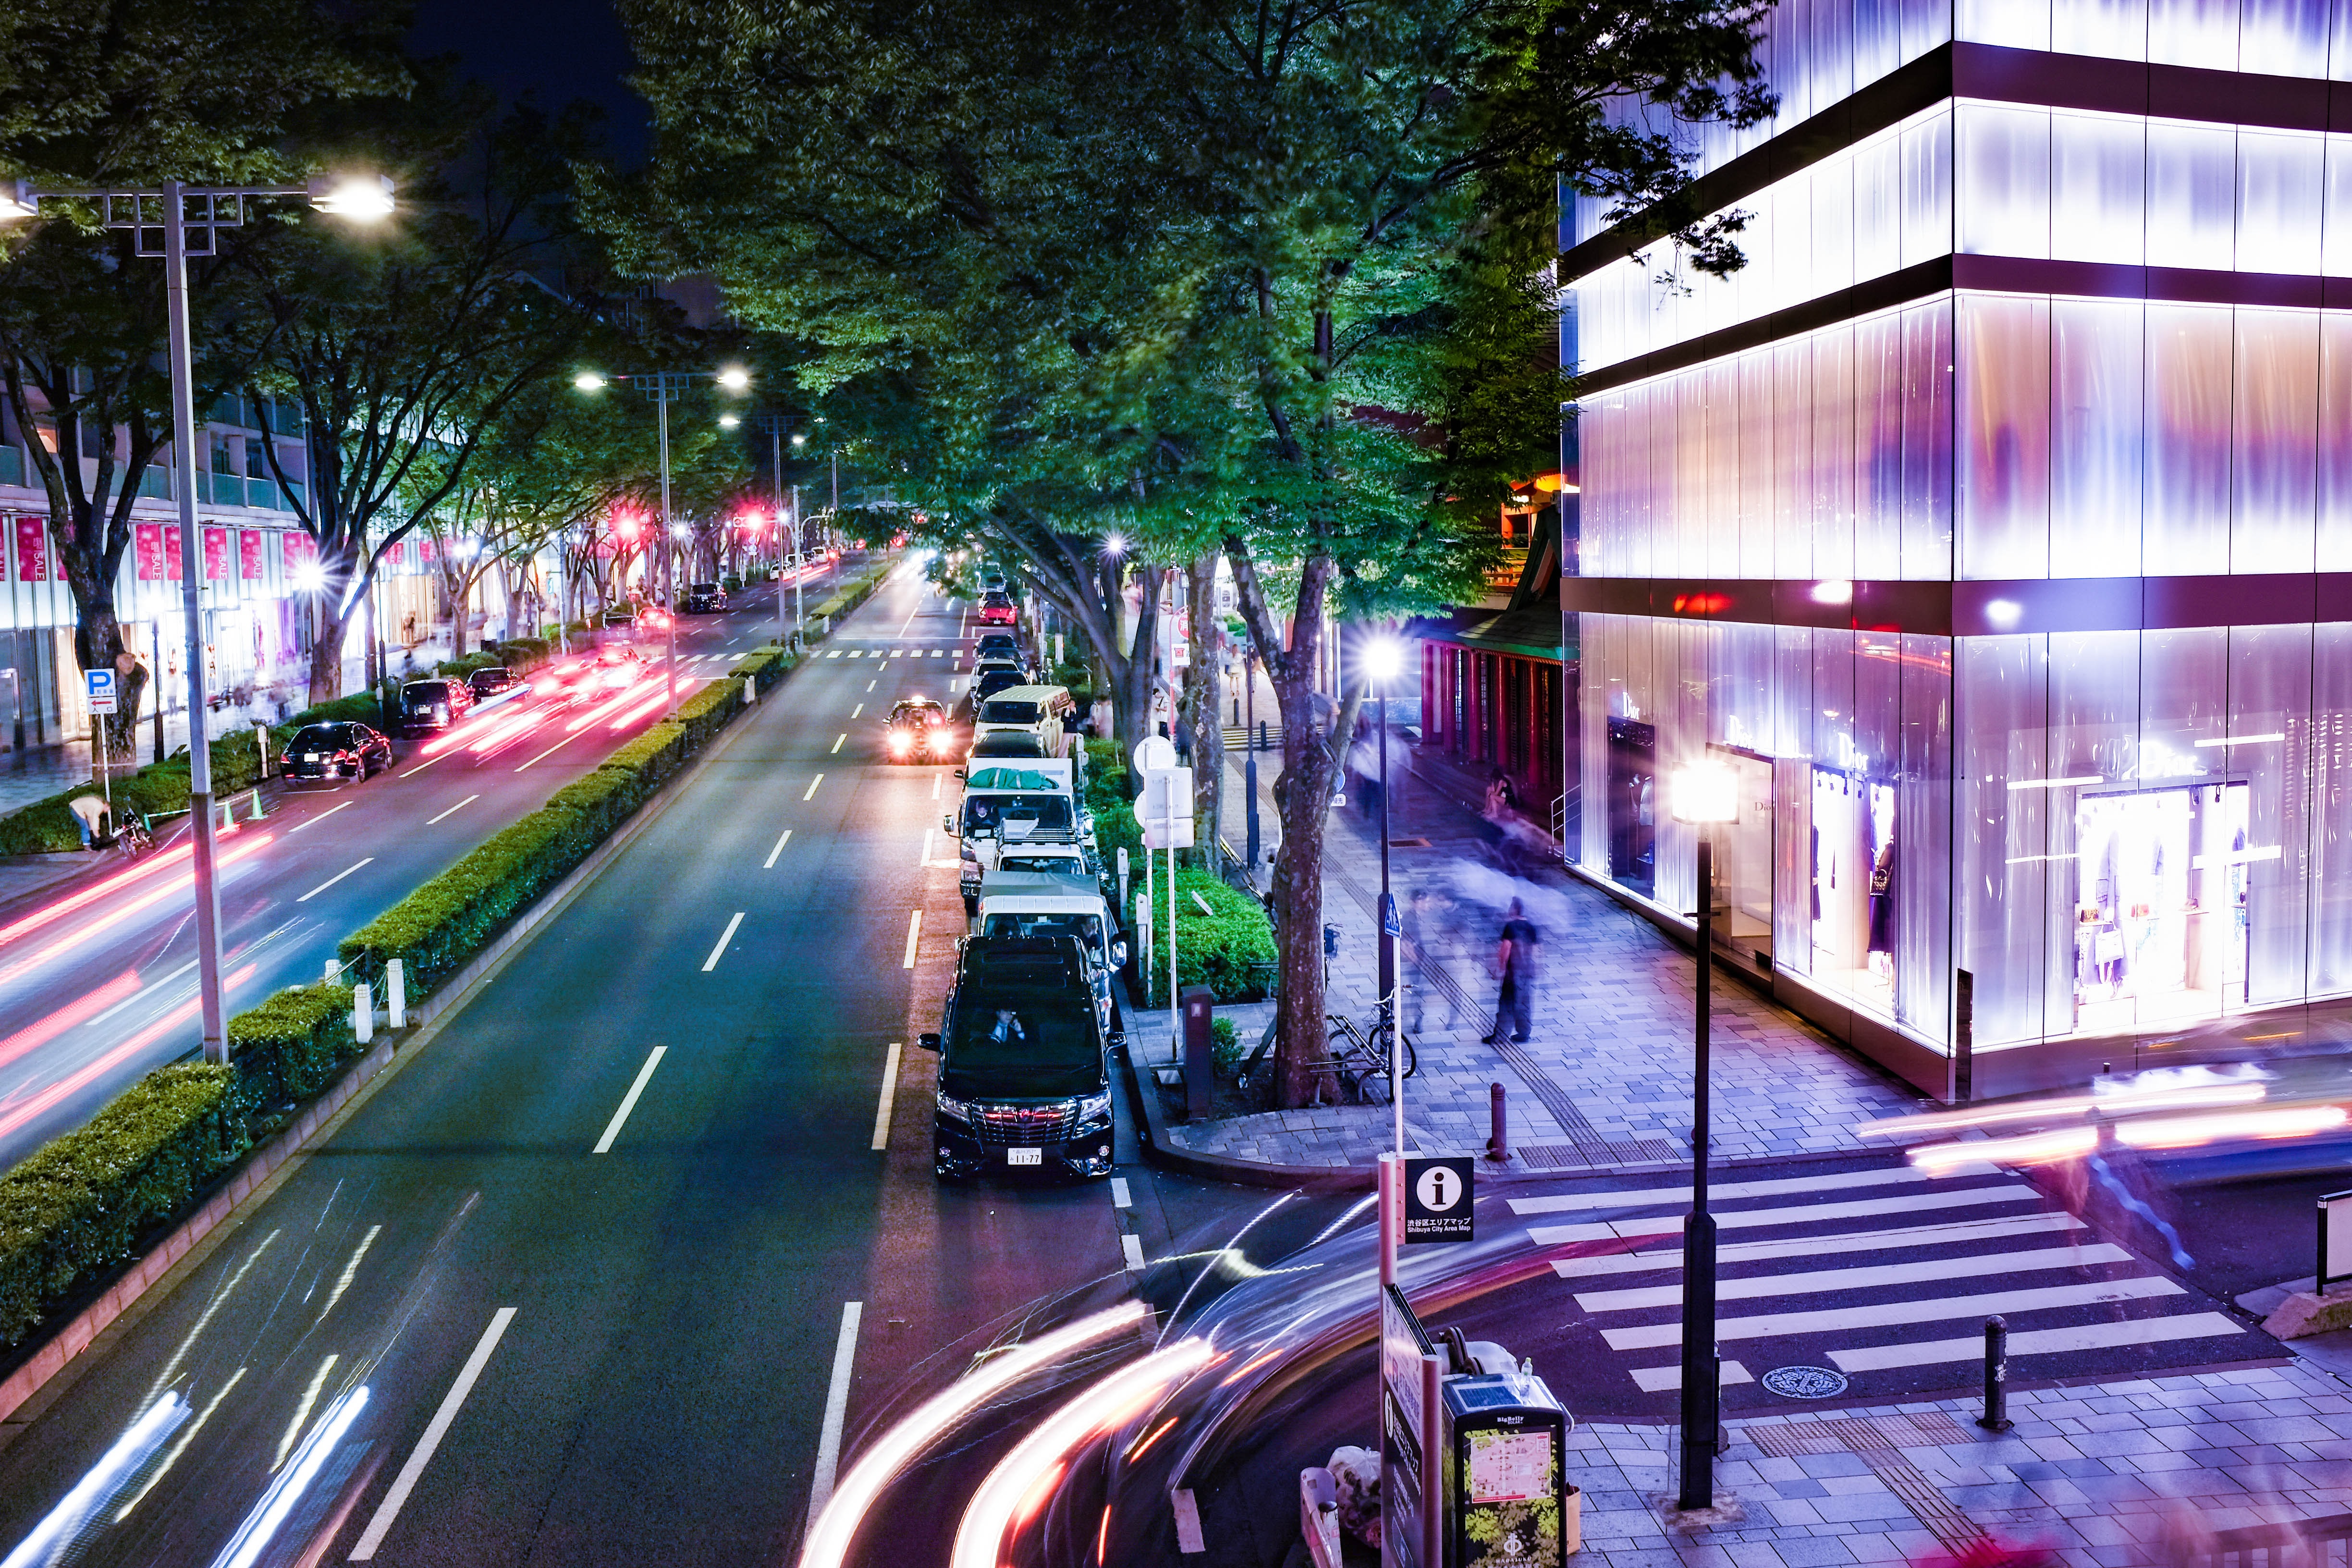 Long exposure photo of an avenue with people, cars and a facade lit building at night at the Omote-sando Station